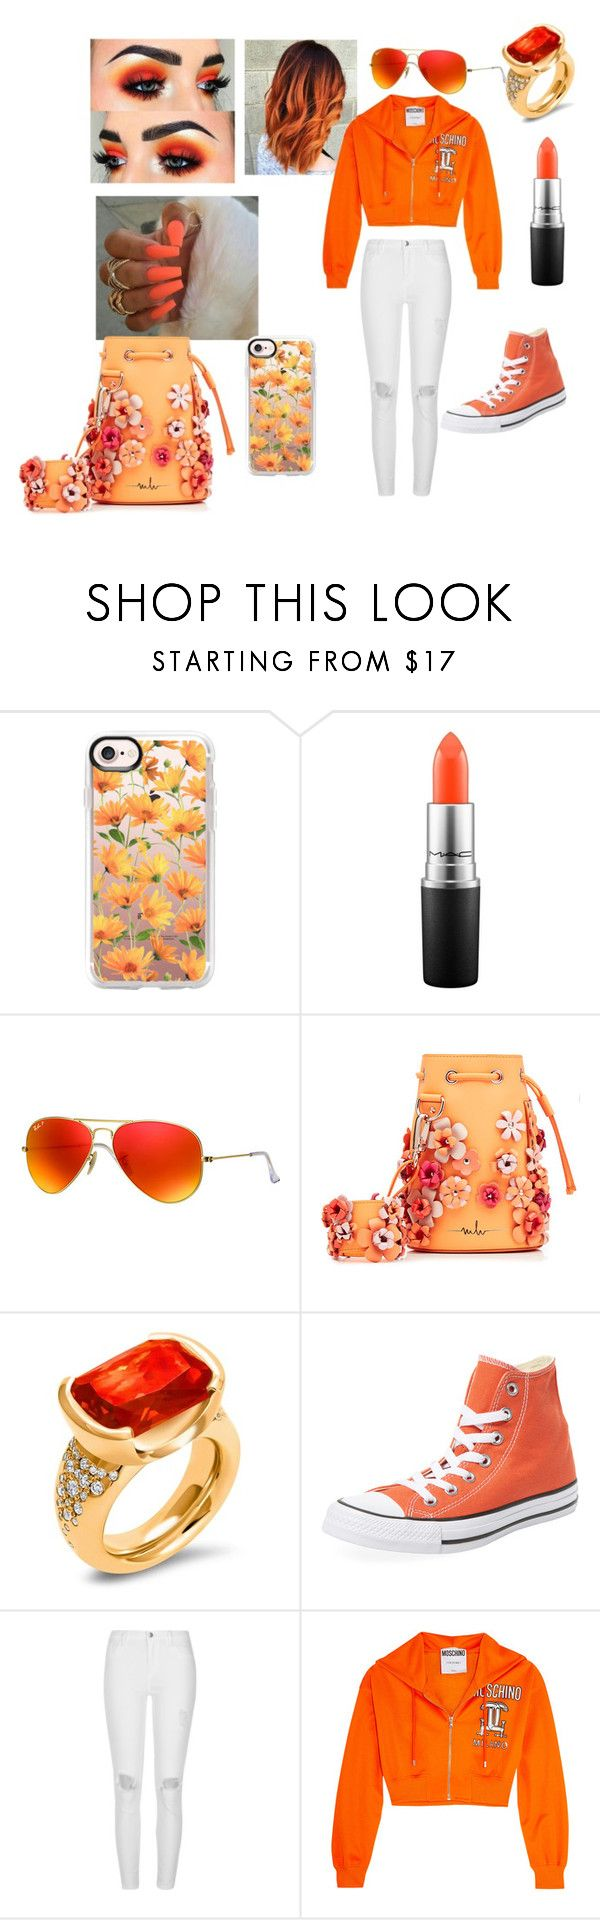 """amazing baddie outfir for high school"" by baddieoutfits ❤ liked on Polyvore featuring Casetify, MAC Cosmetics, Ray-Ban, Marina Hoermanseder, Hargreaves Stockholm, Converse, River Island and Moschino"